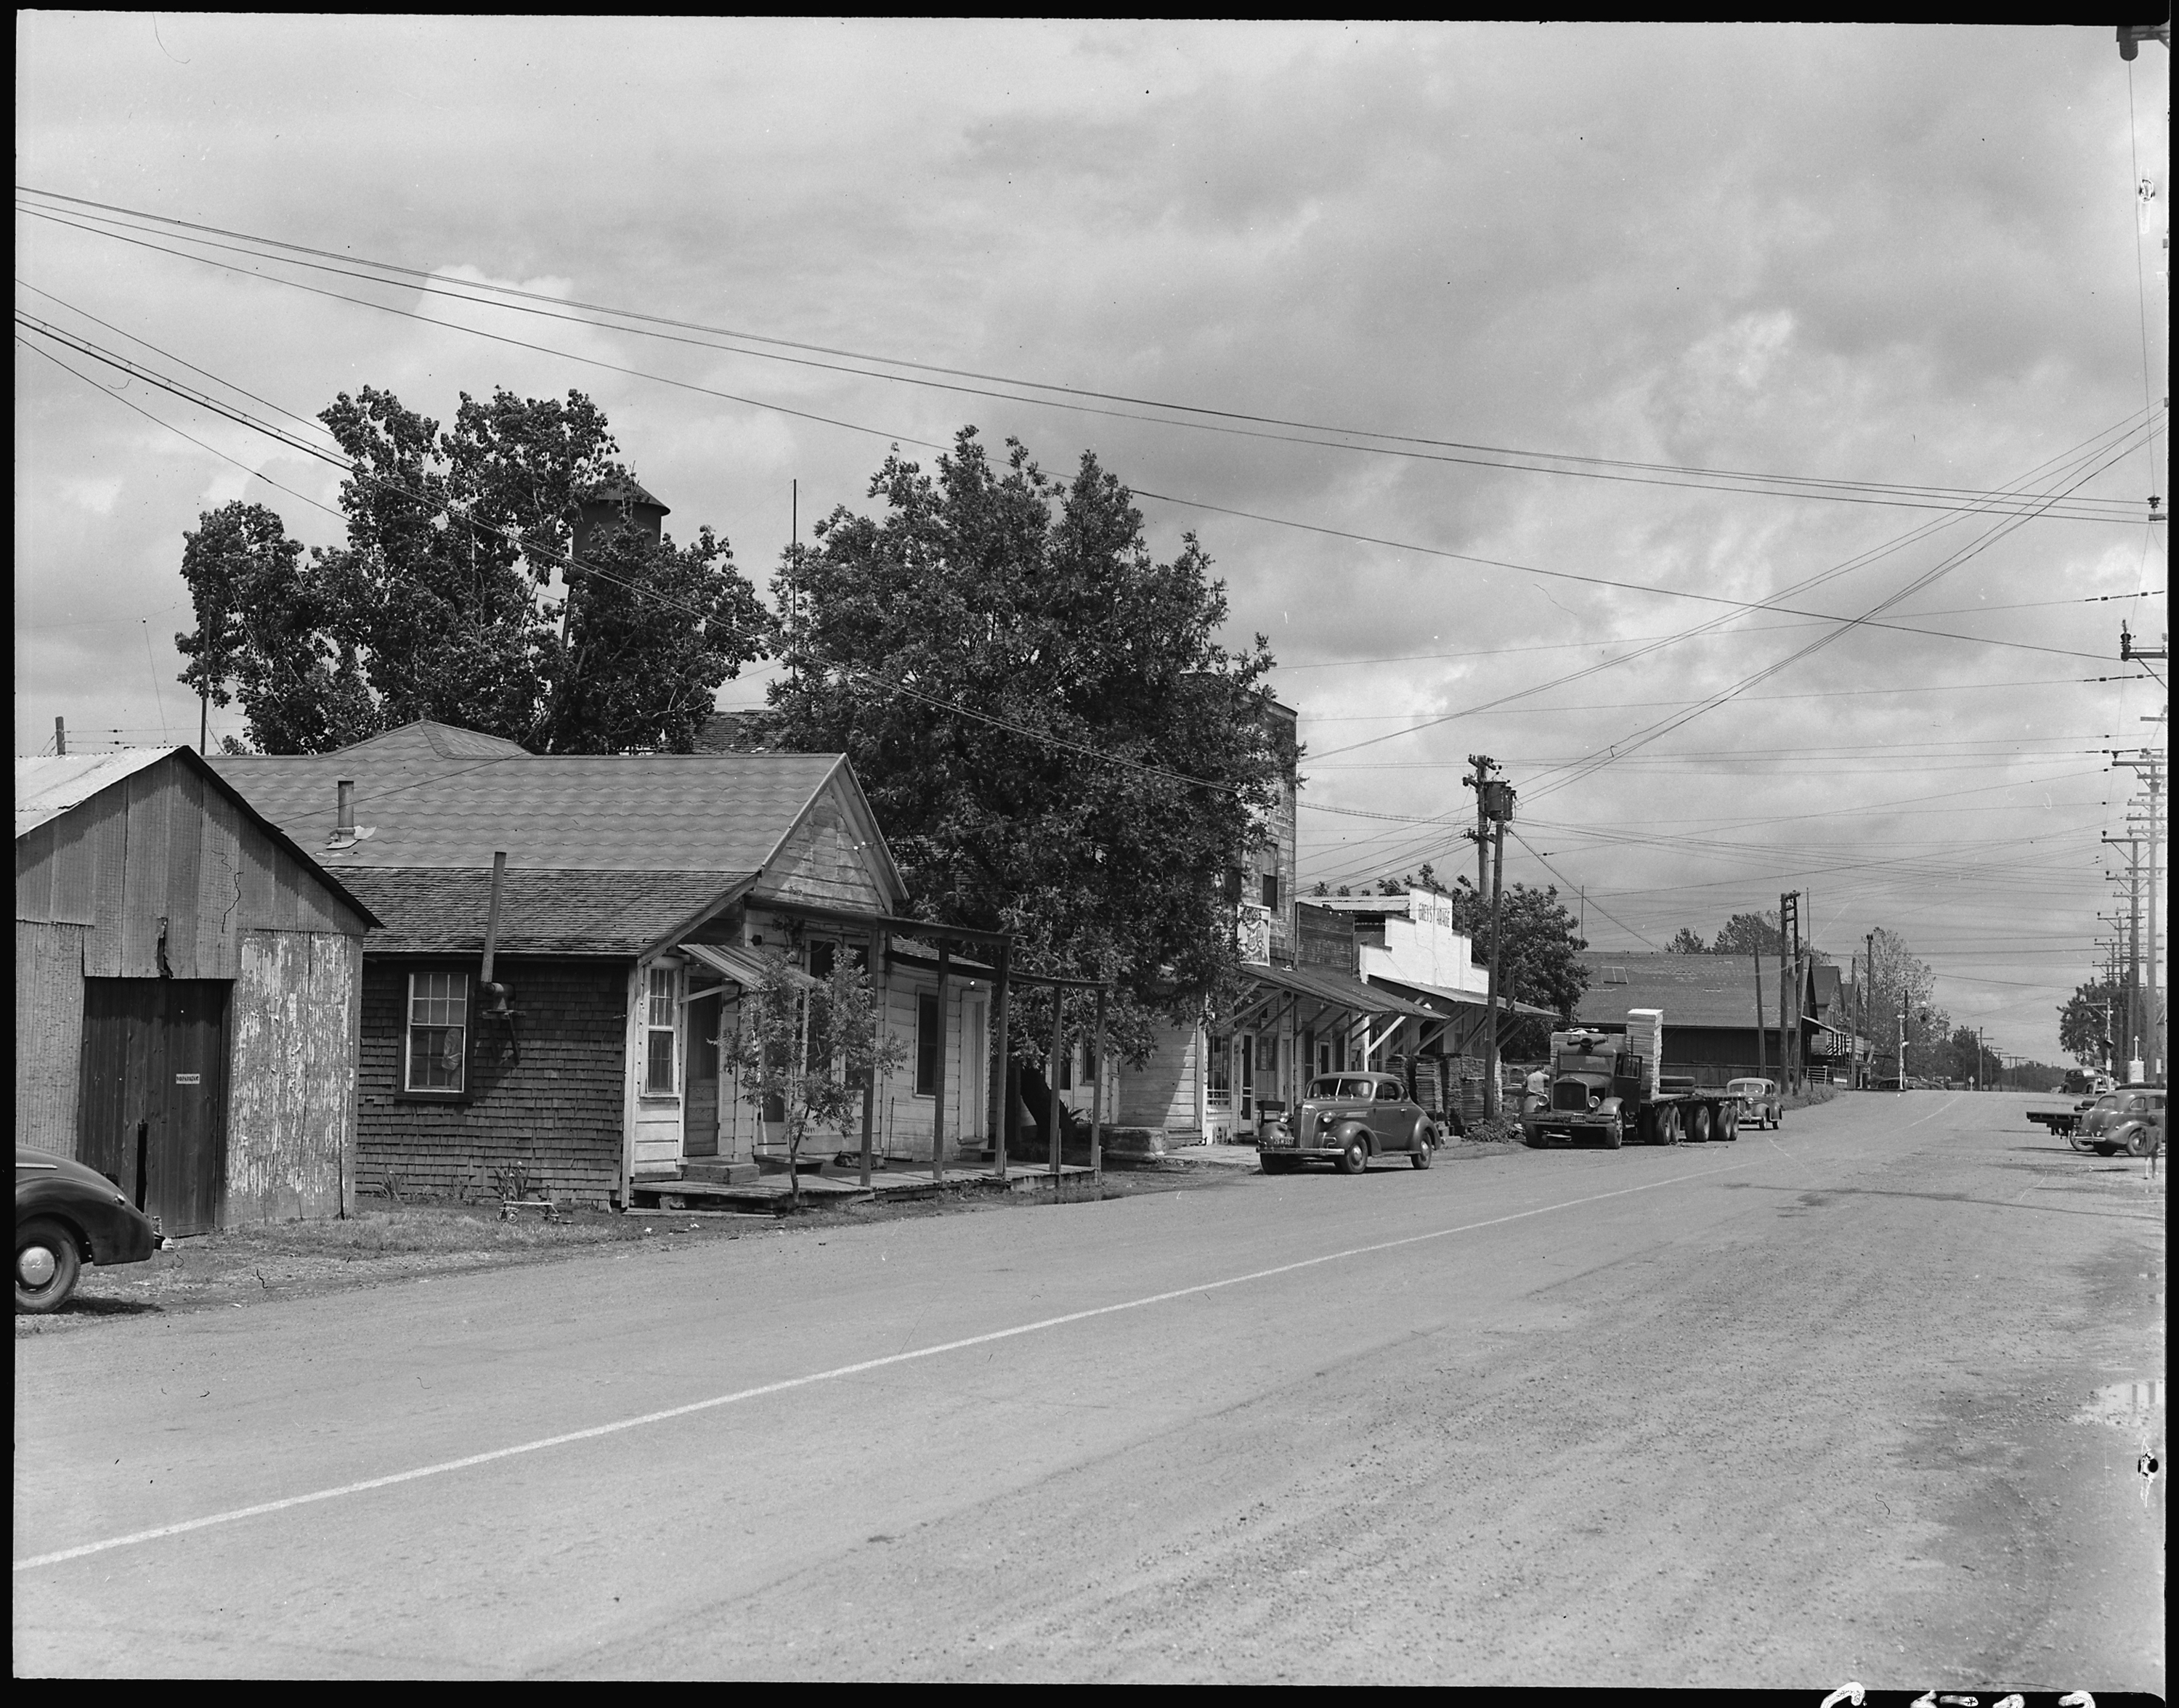 FileFlorin California Main Street of this small town in